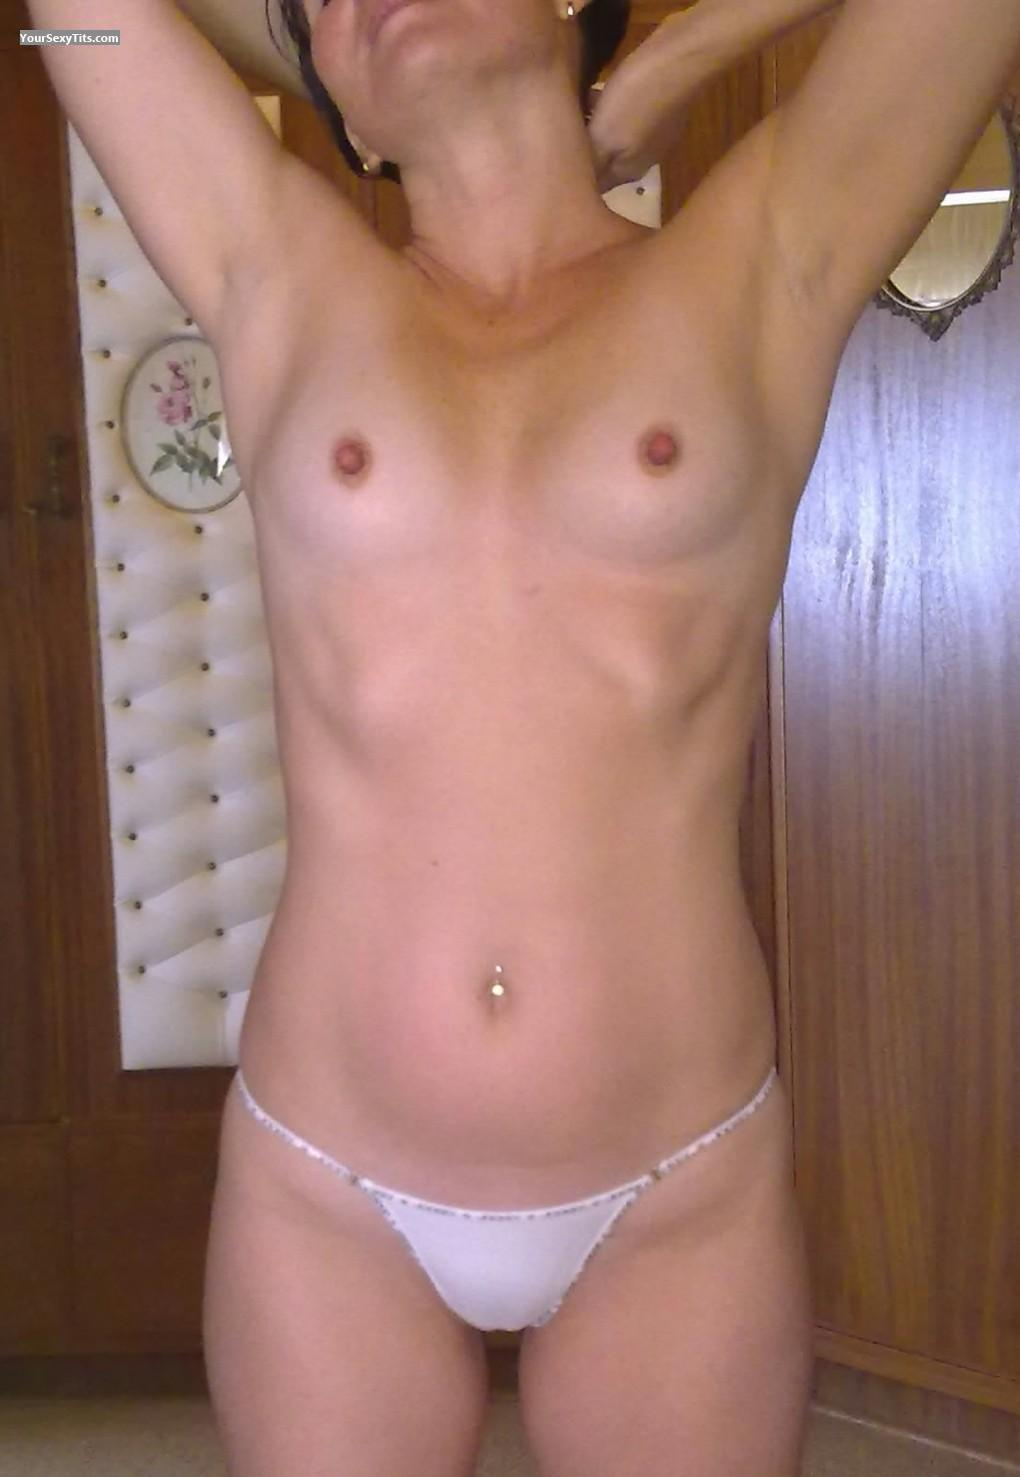 Tit Flash: Small Tits - Desiree (Des) from South Africa